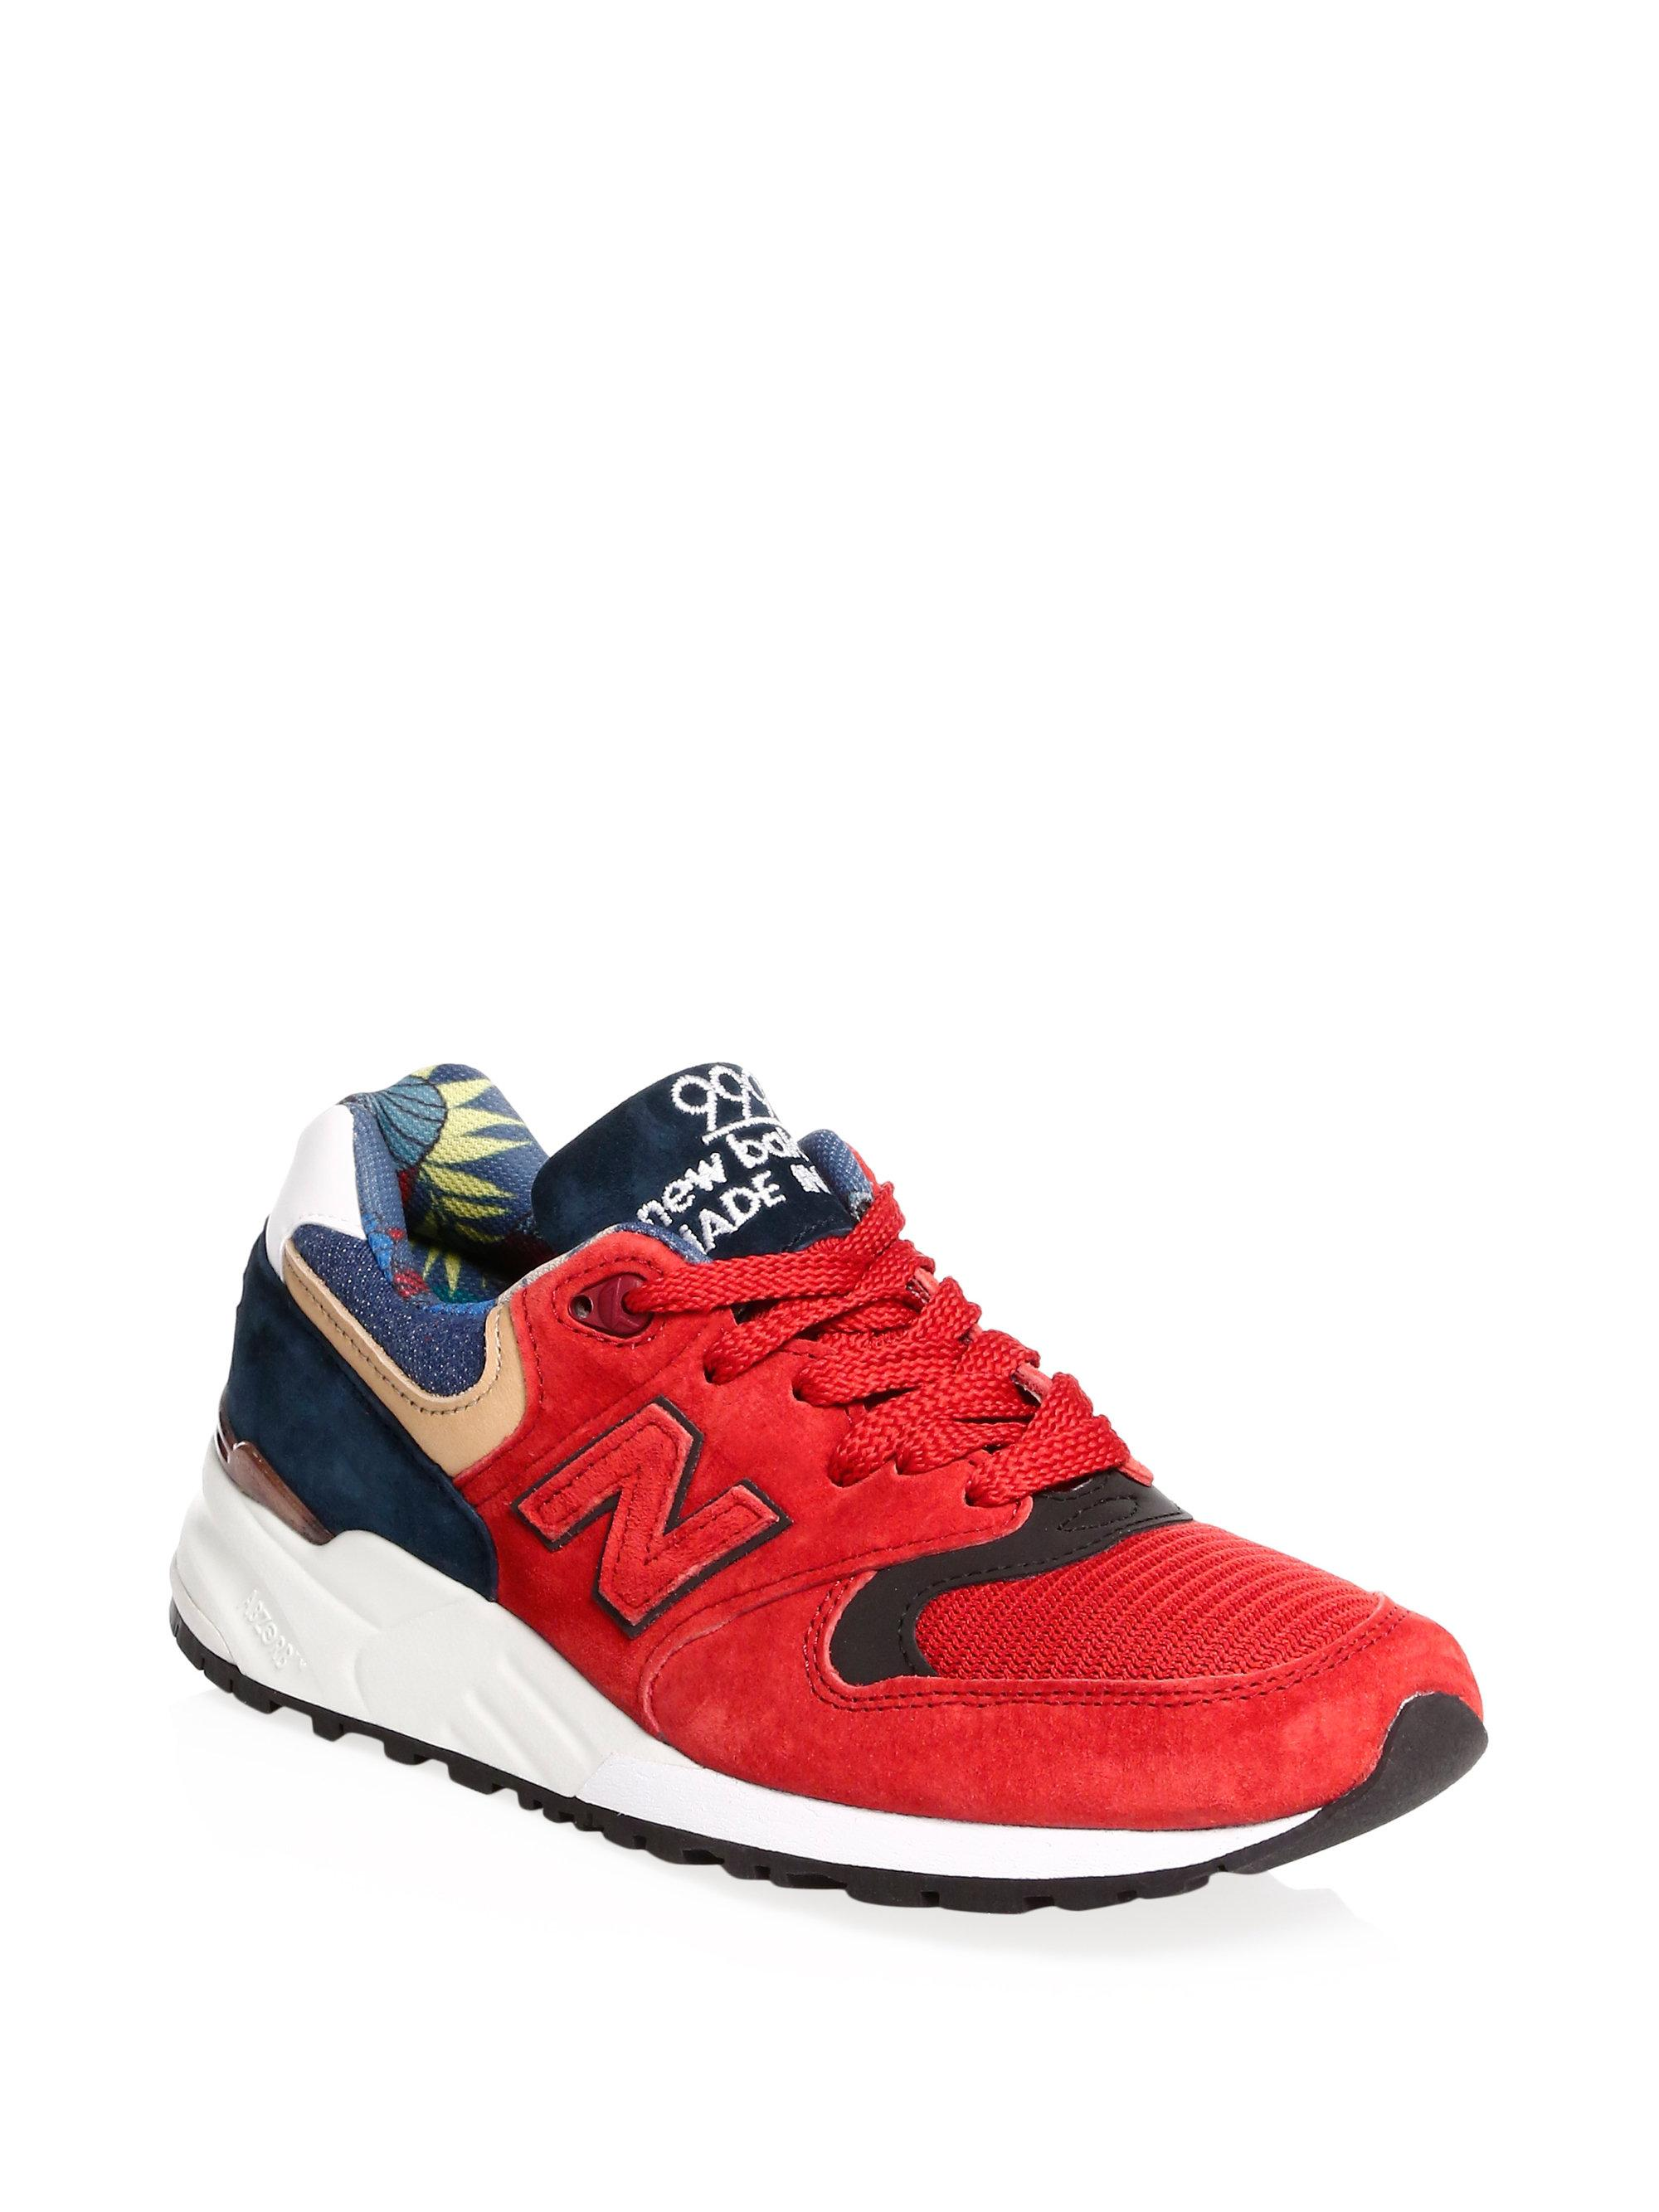 New Balance Asia Suede Sneakers